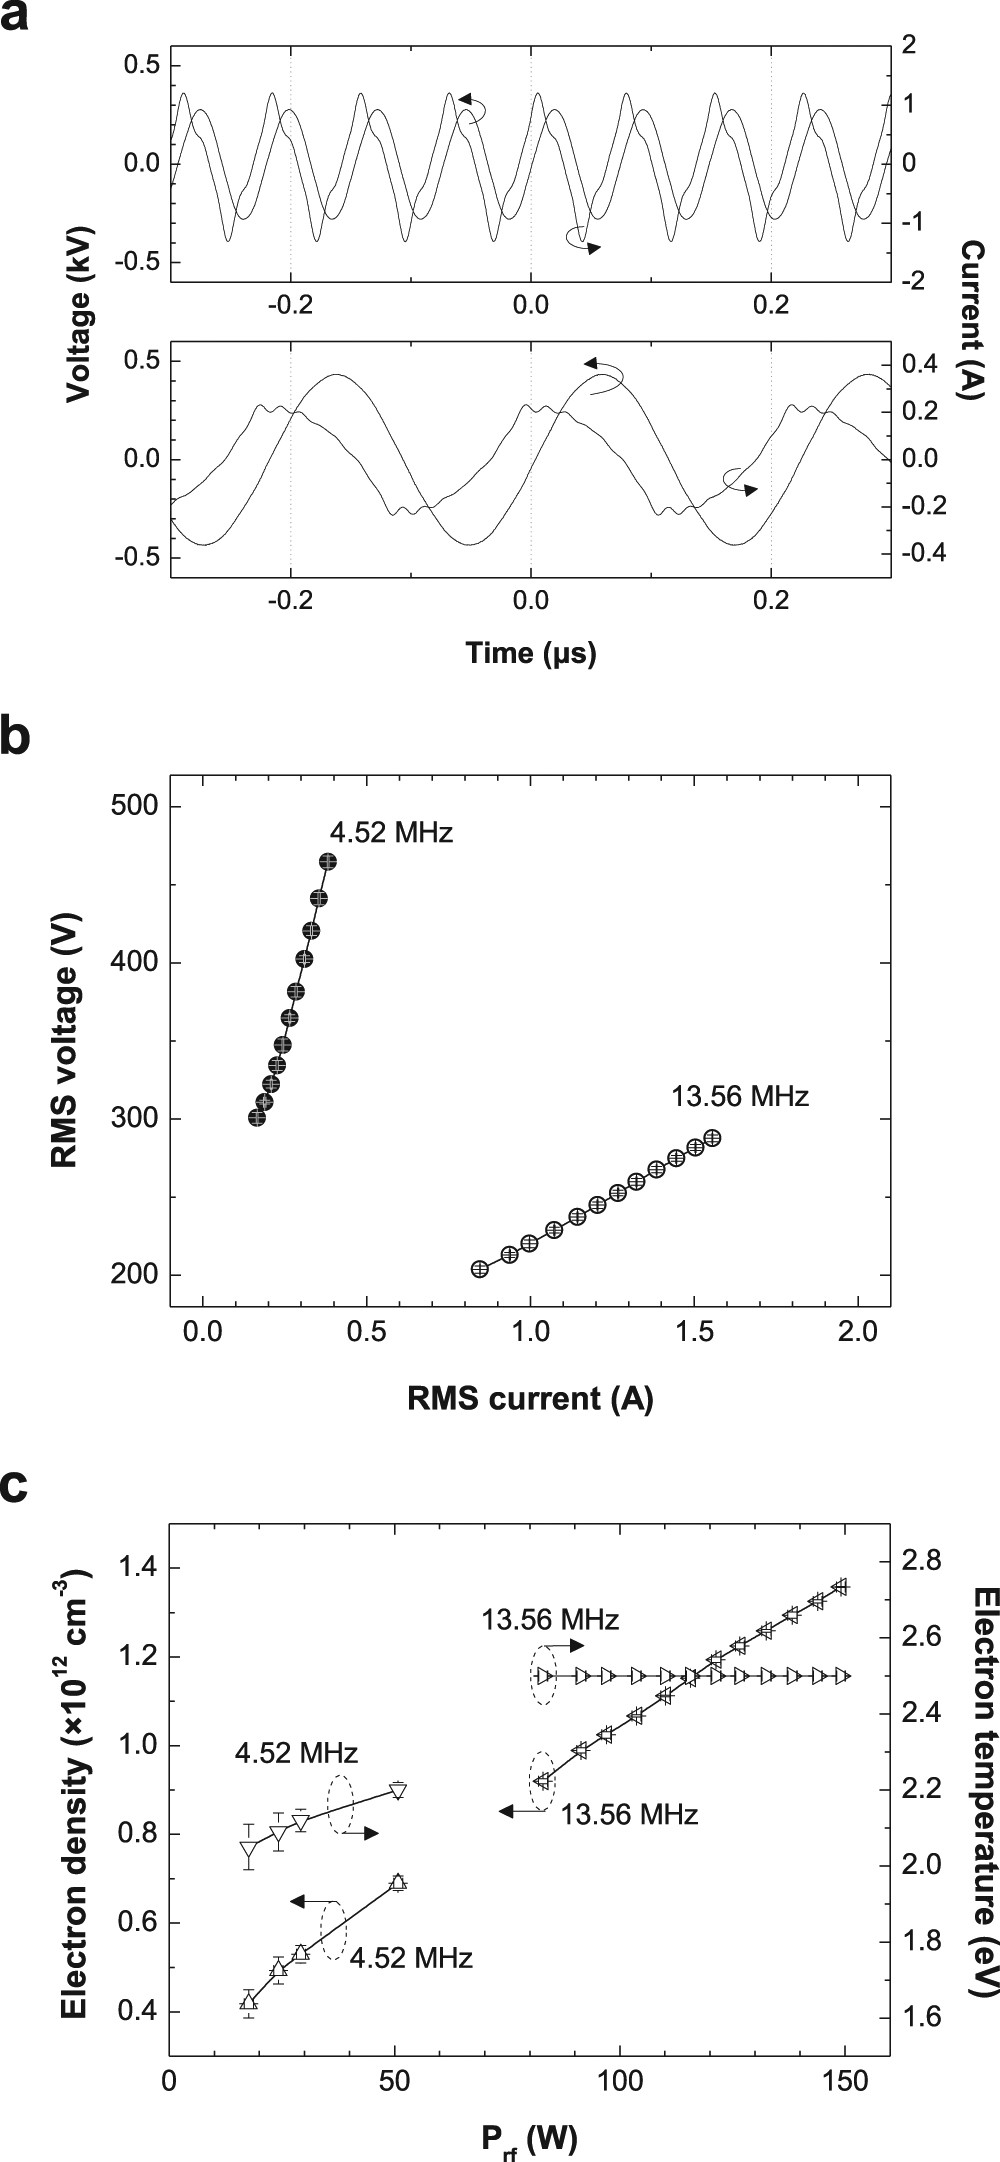 Electron Information In Single And Dual Frequency Capacitive Air Pressor 240 Volt Wiring Diagram Discharges At Atmospheric Pressure Scientific Reports